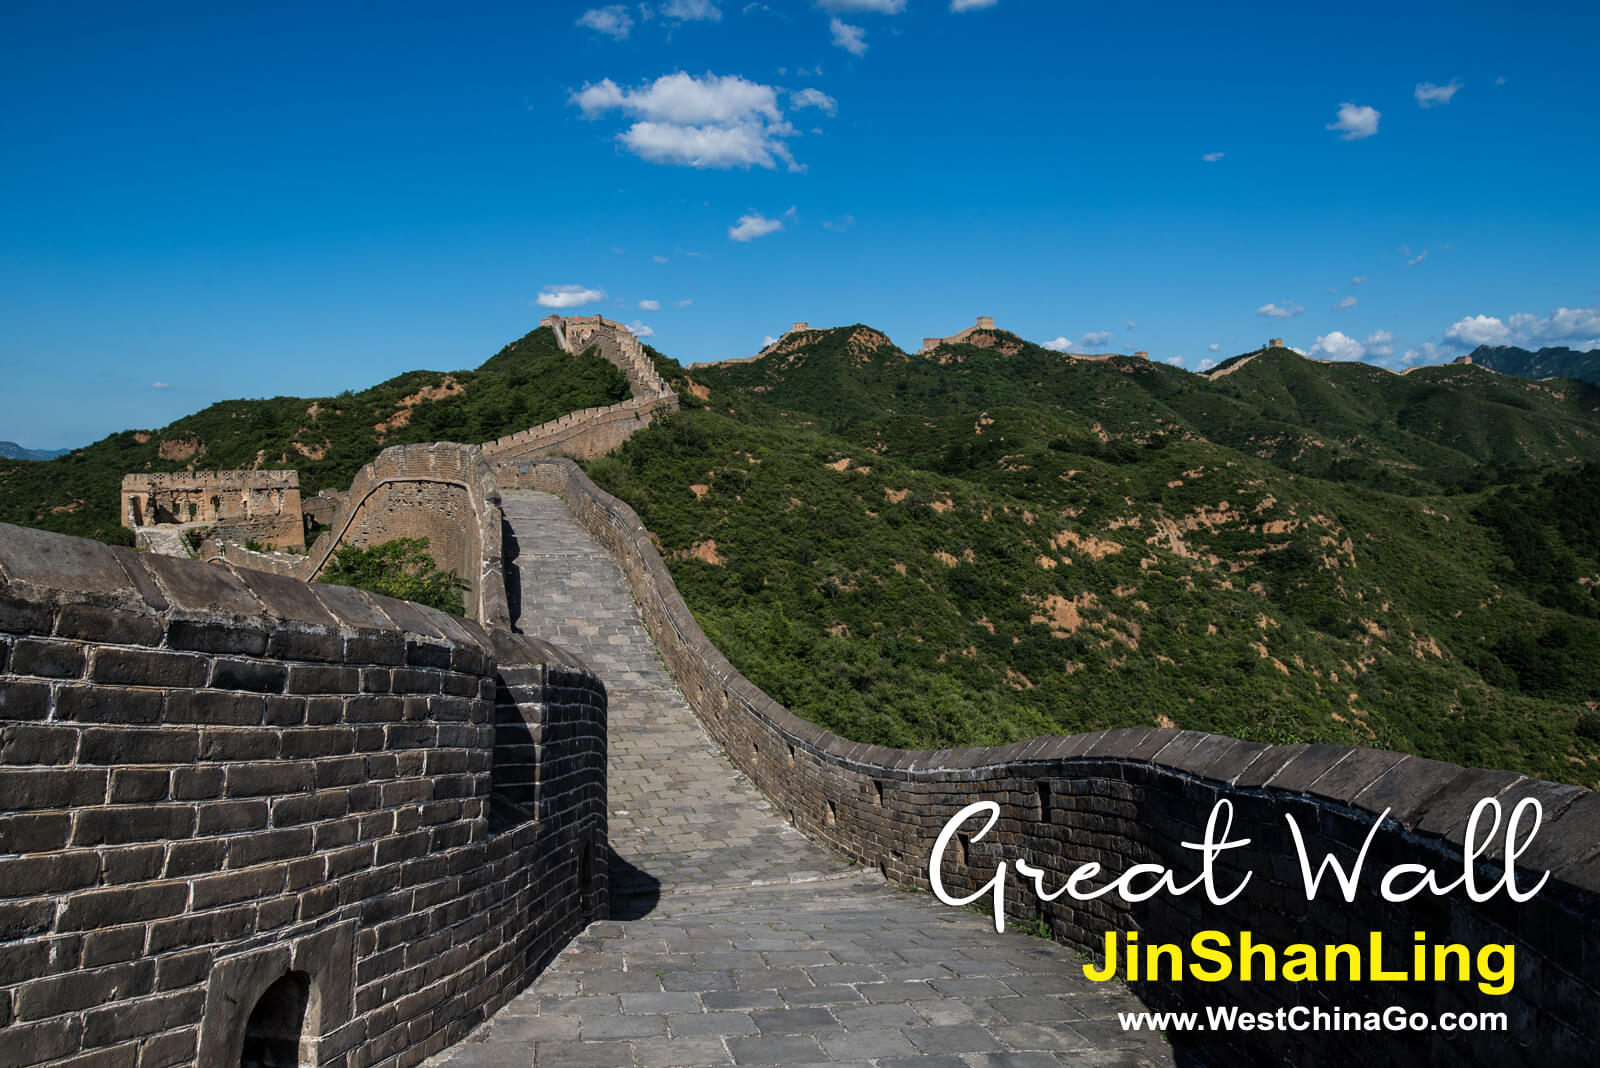 BeiJing jinshanling Great Wall